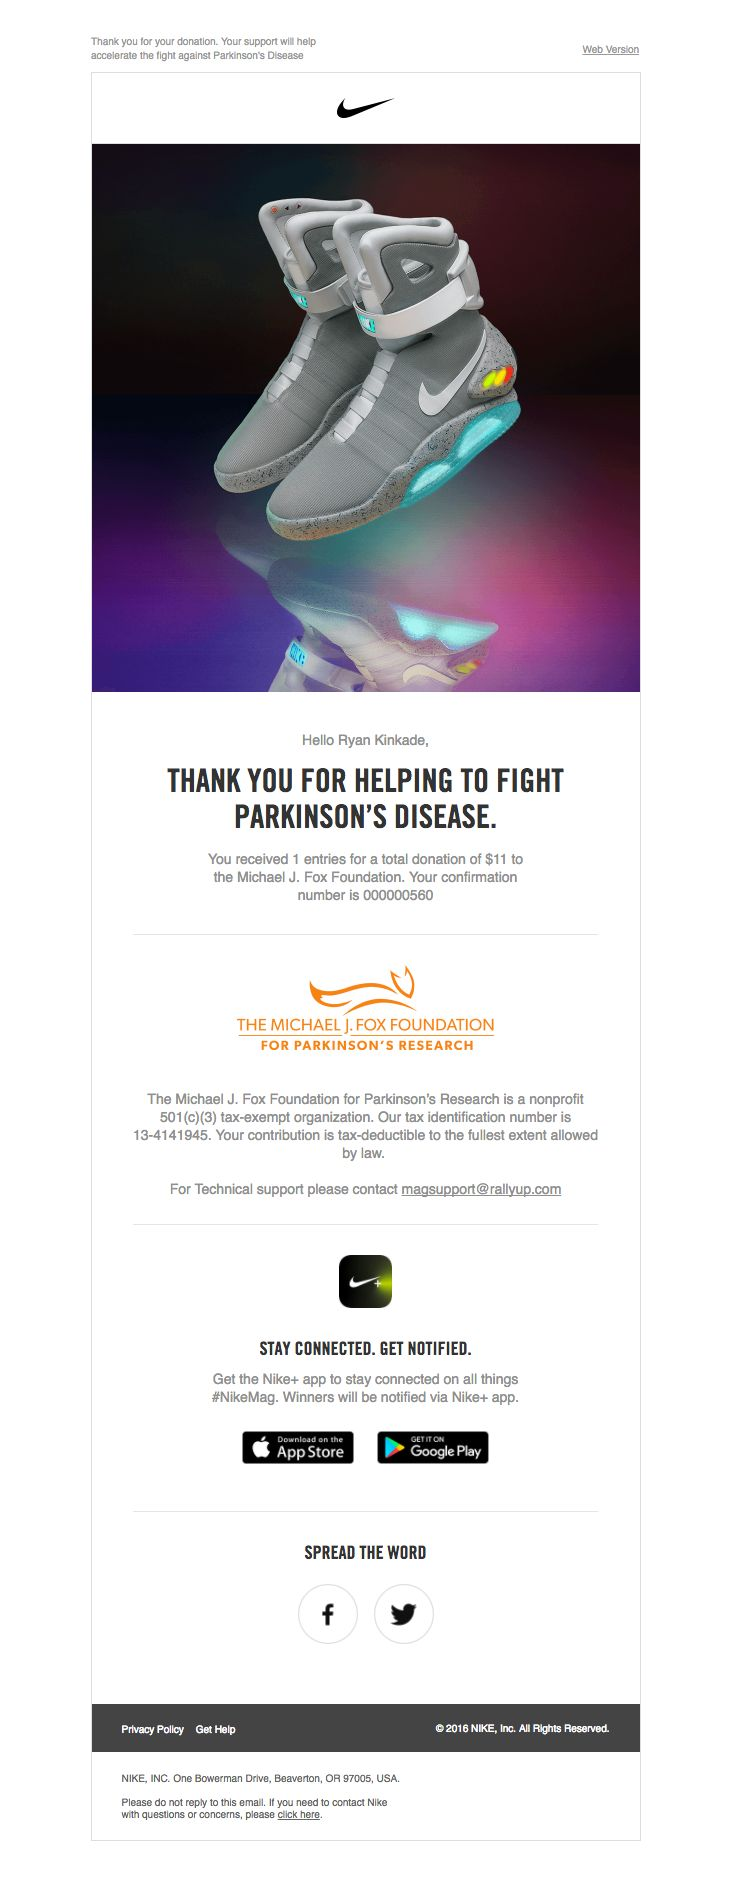 Nike sent this email with the subject line: Your Michael J. Fox Foundation donation